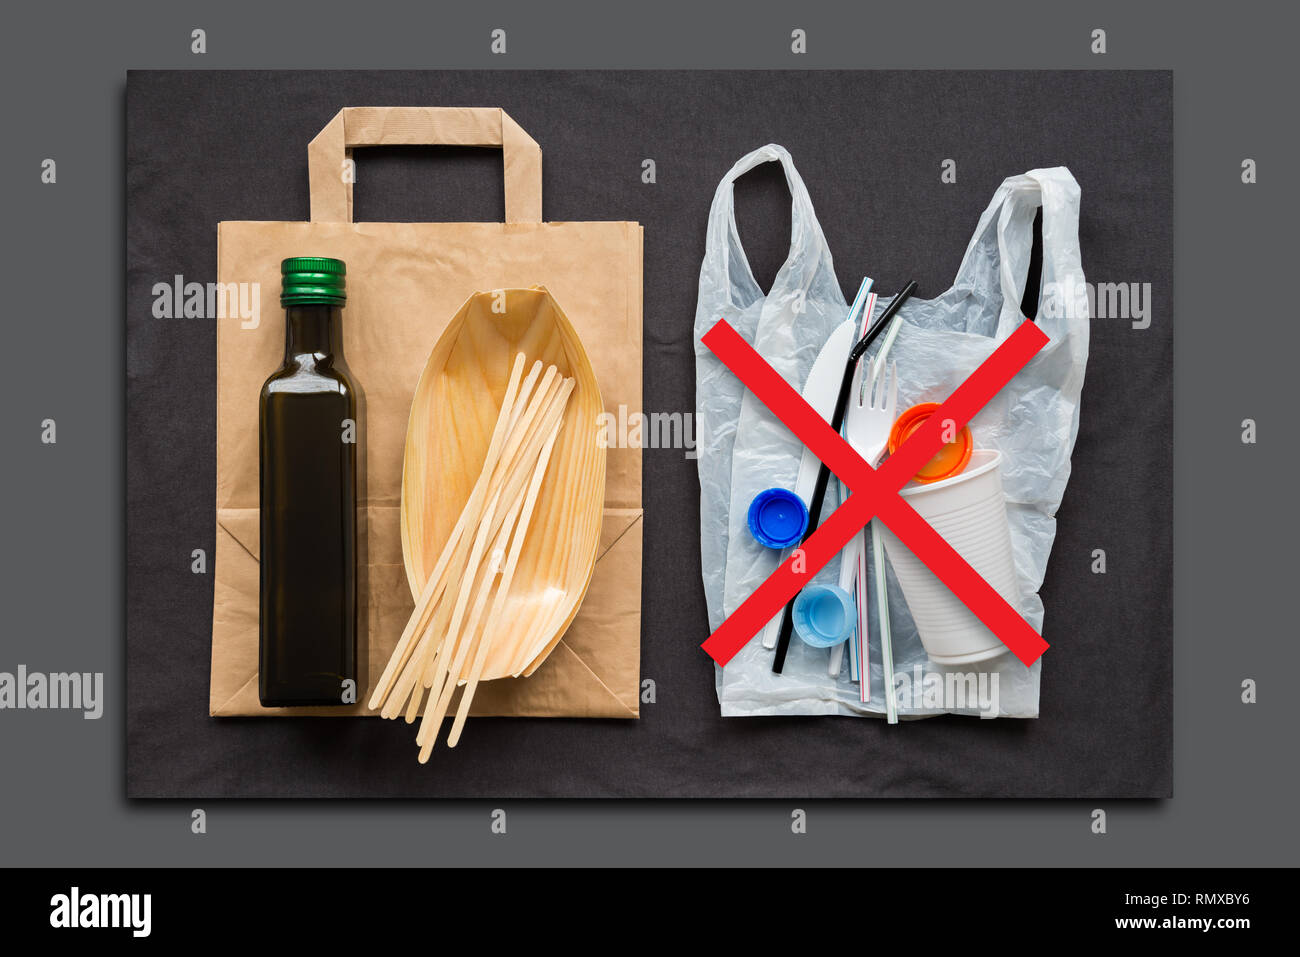 Eco-friendly dishes made of wood and paper as opposed to single-use plastic and other products harmful to the environment. The concept of choice witho - Stock Image